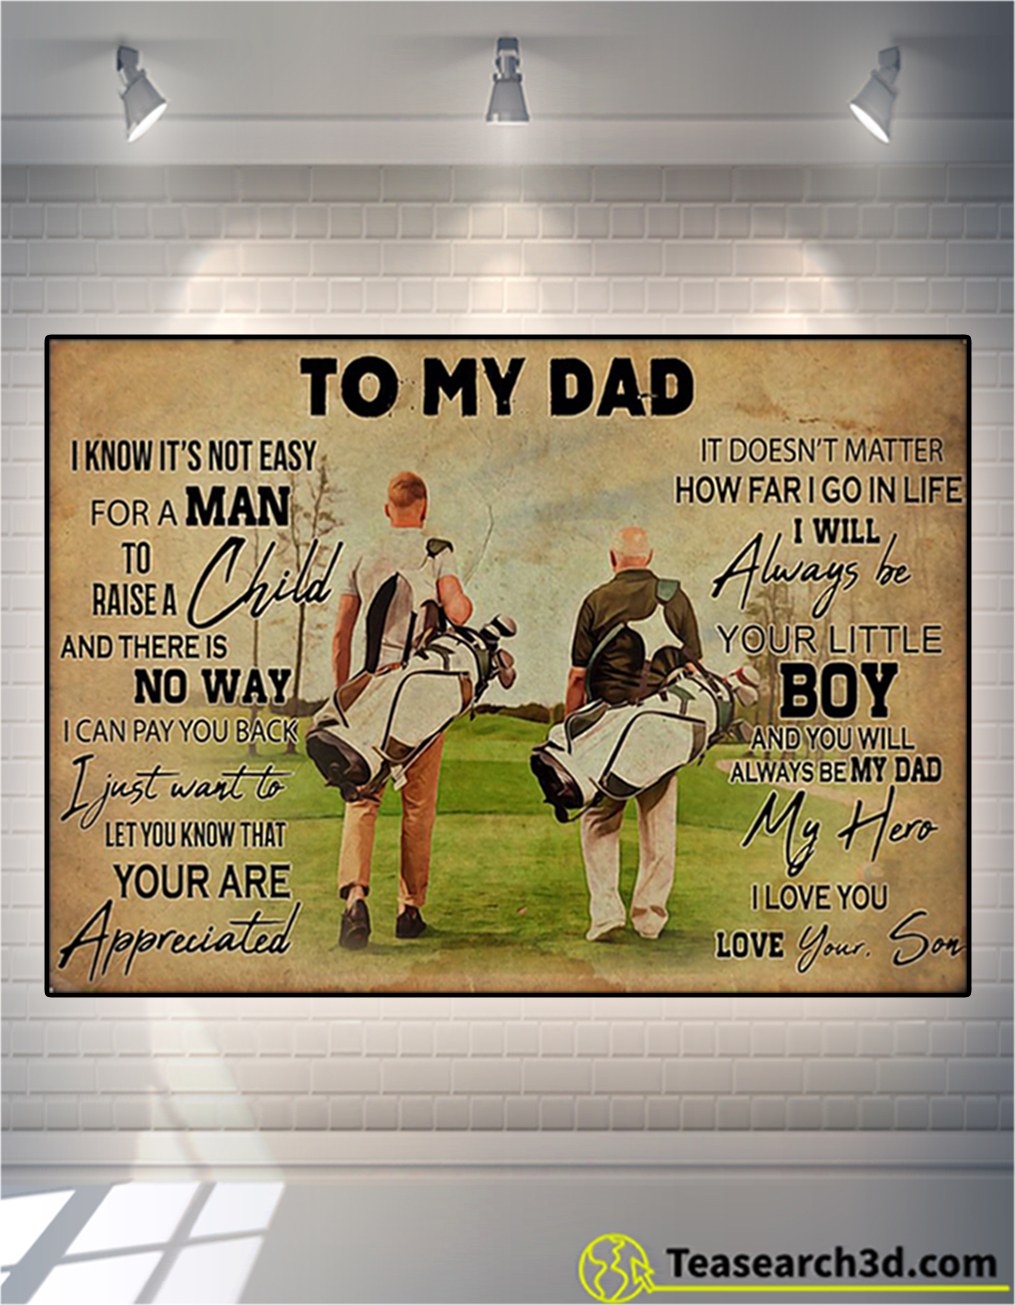 Golf to my dad love your son poster